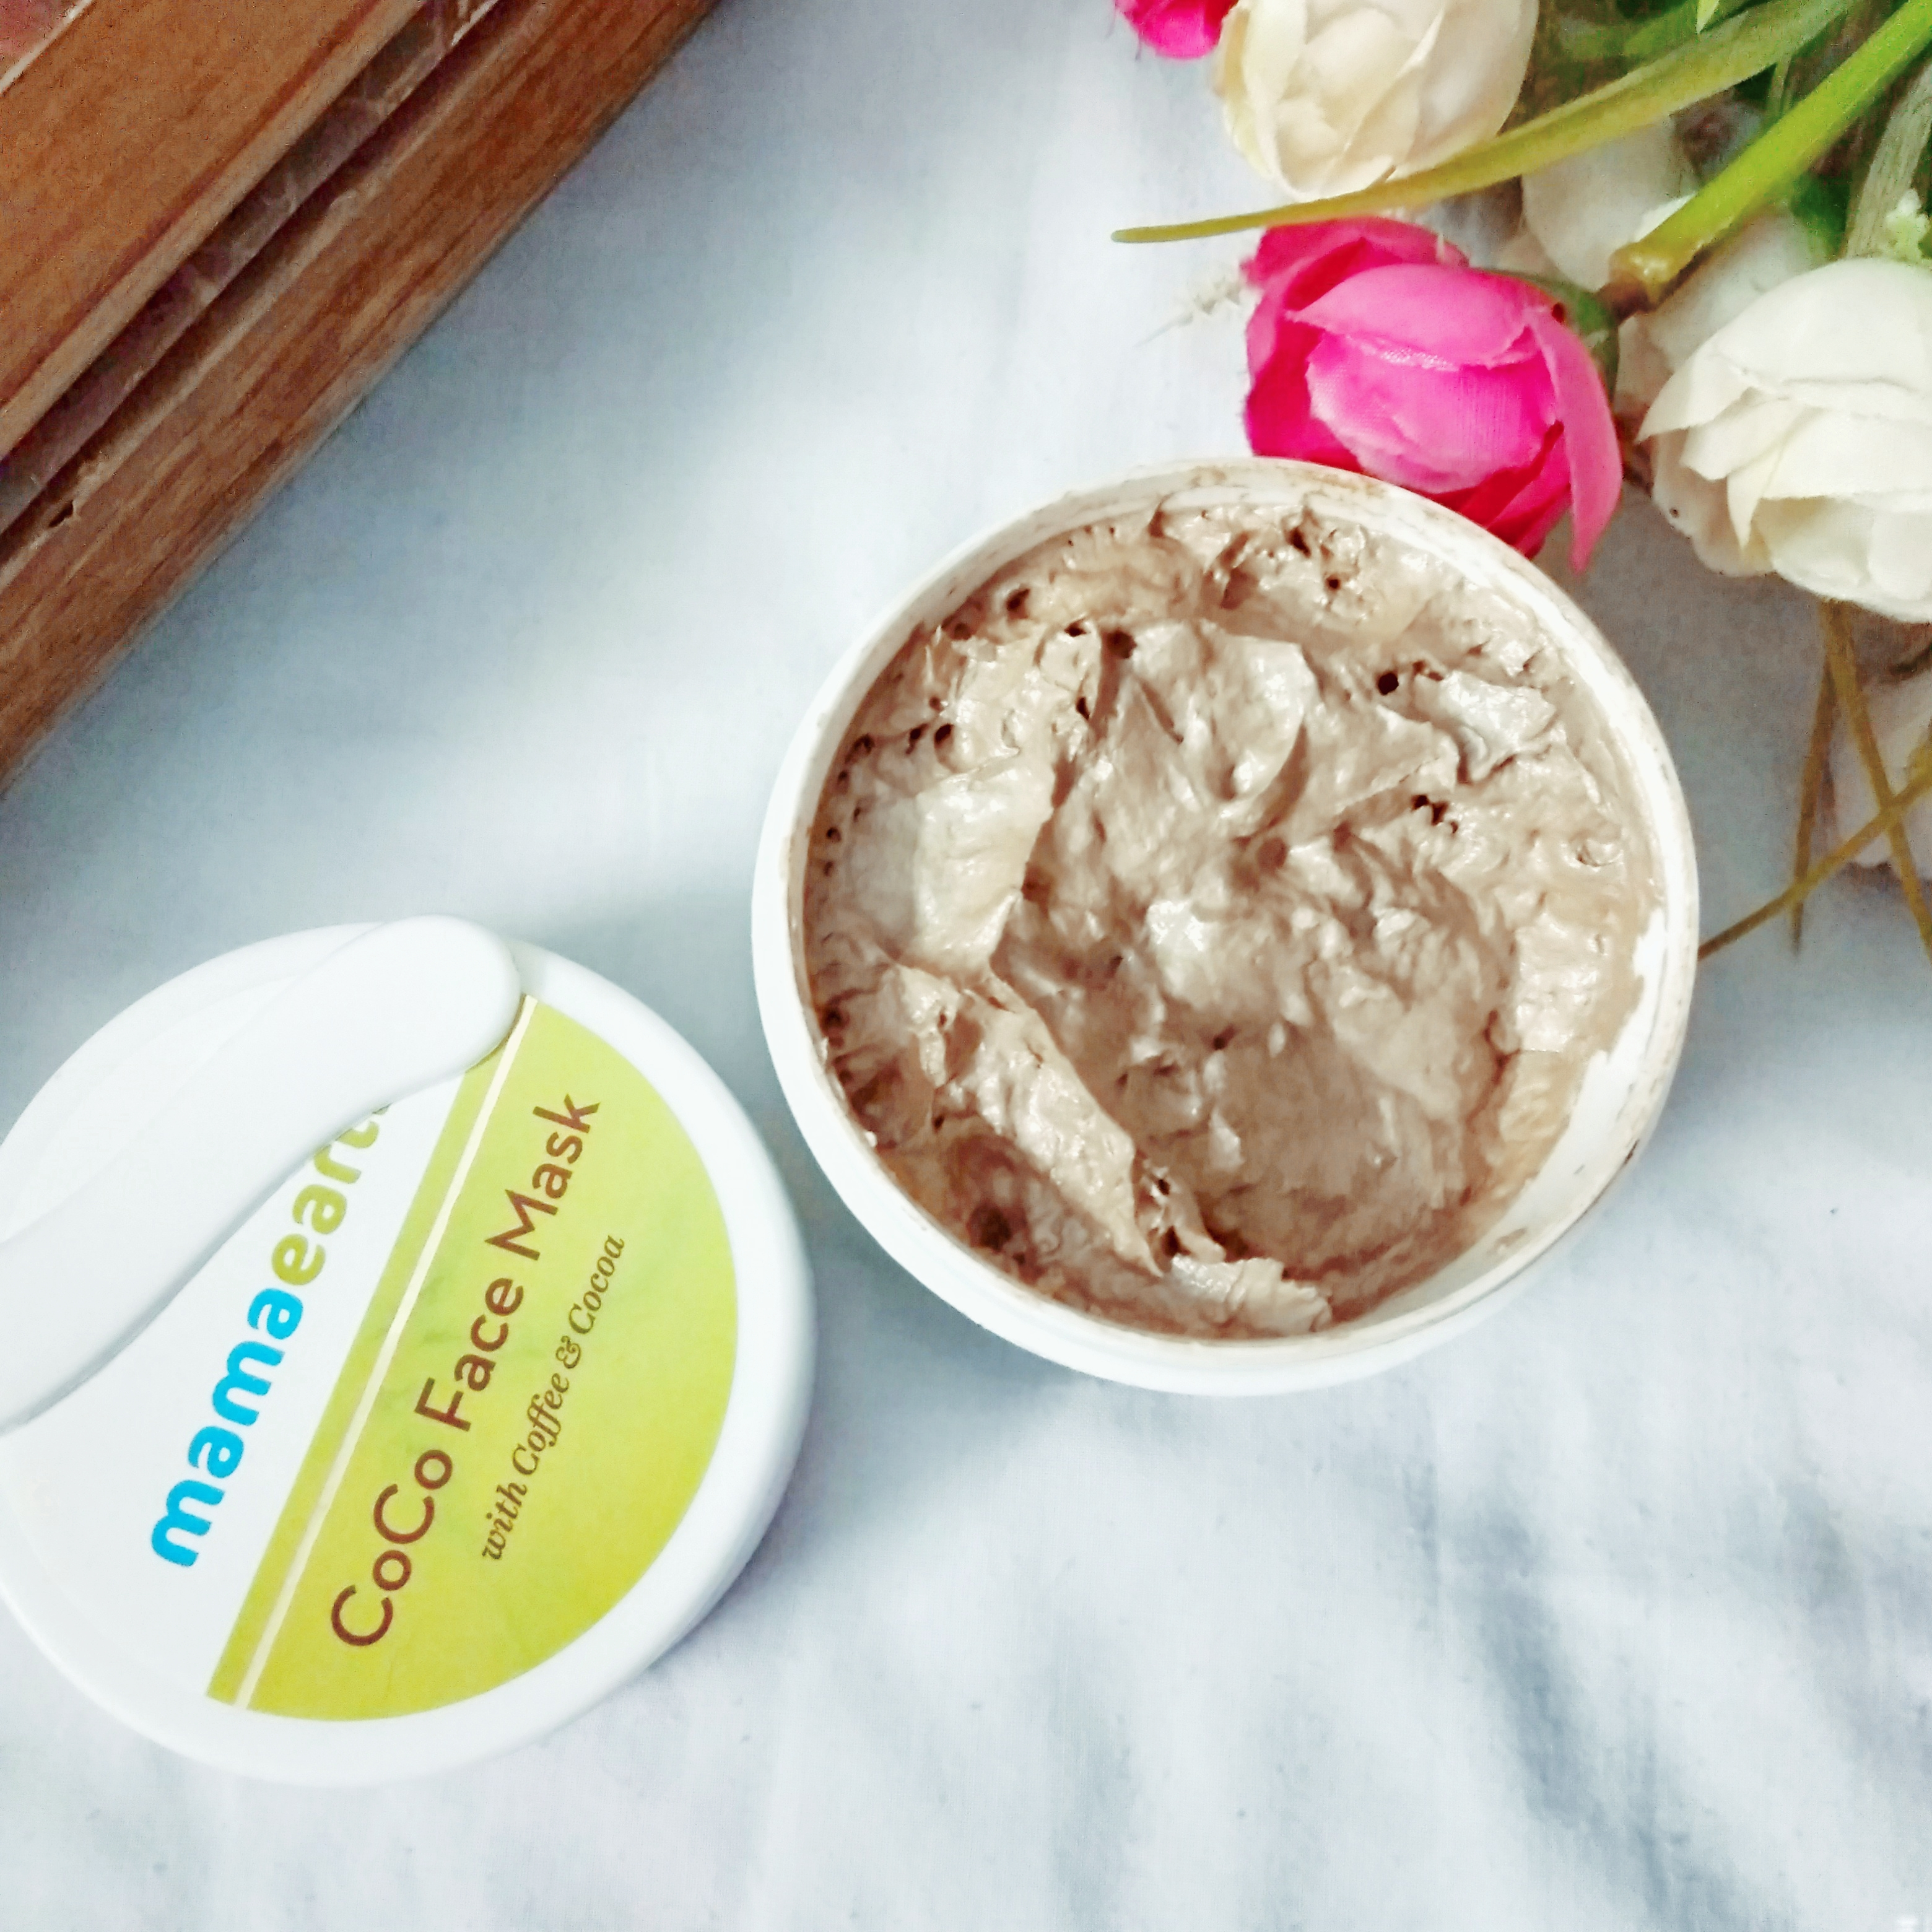 Mamaearth Coco Face Mask With Coffee & Cocoa-The face mask.-By in_voguewonderzz